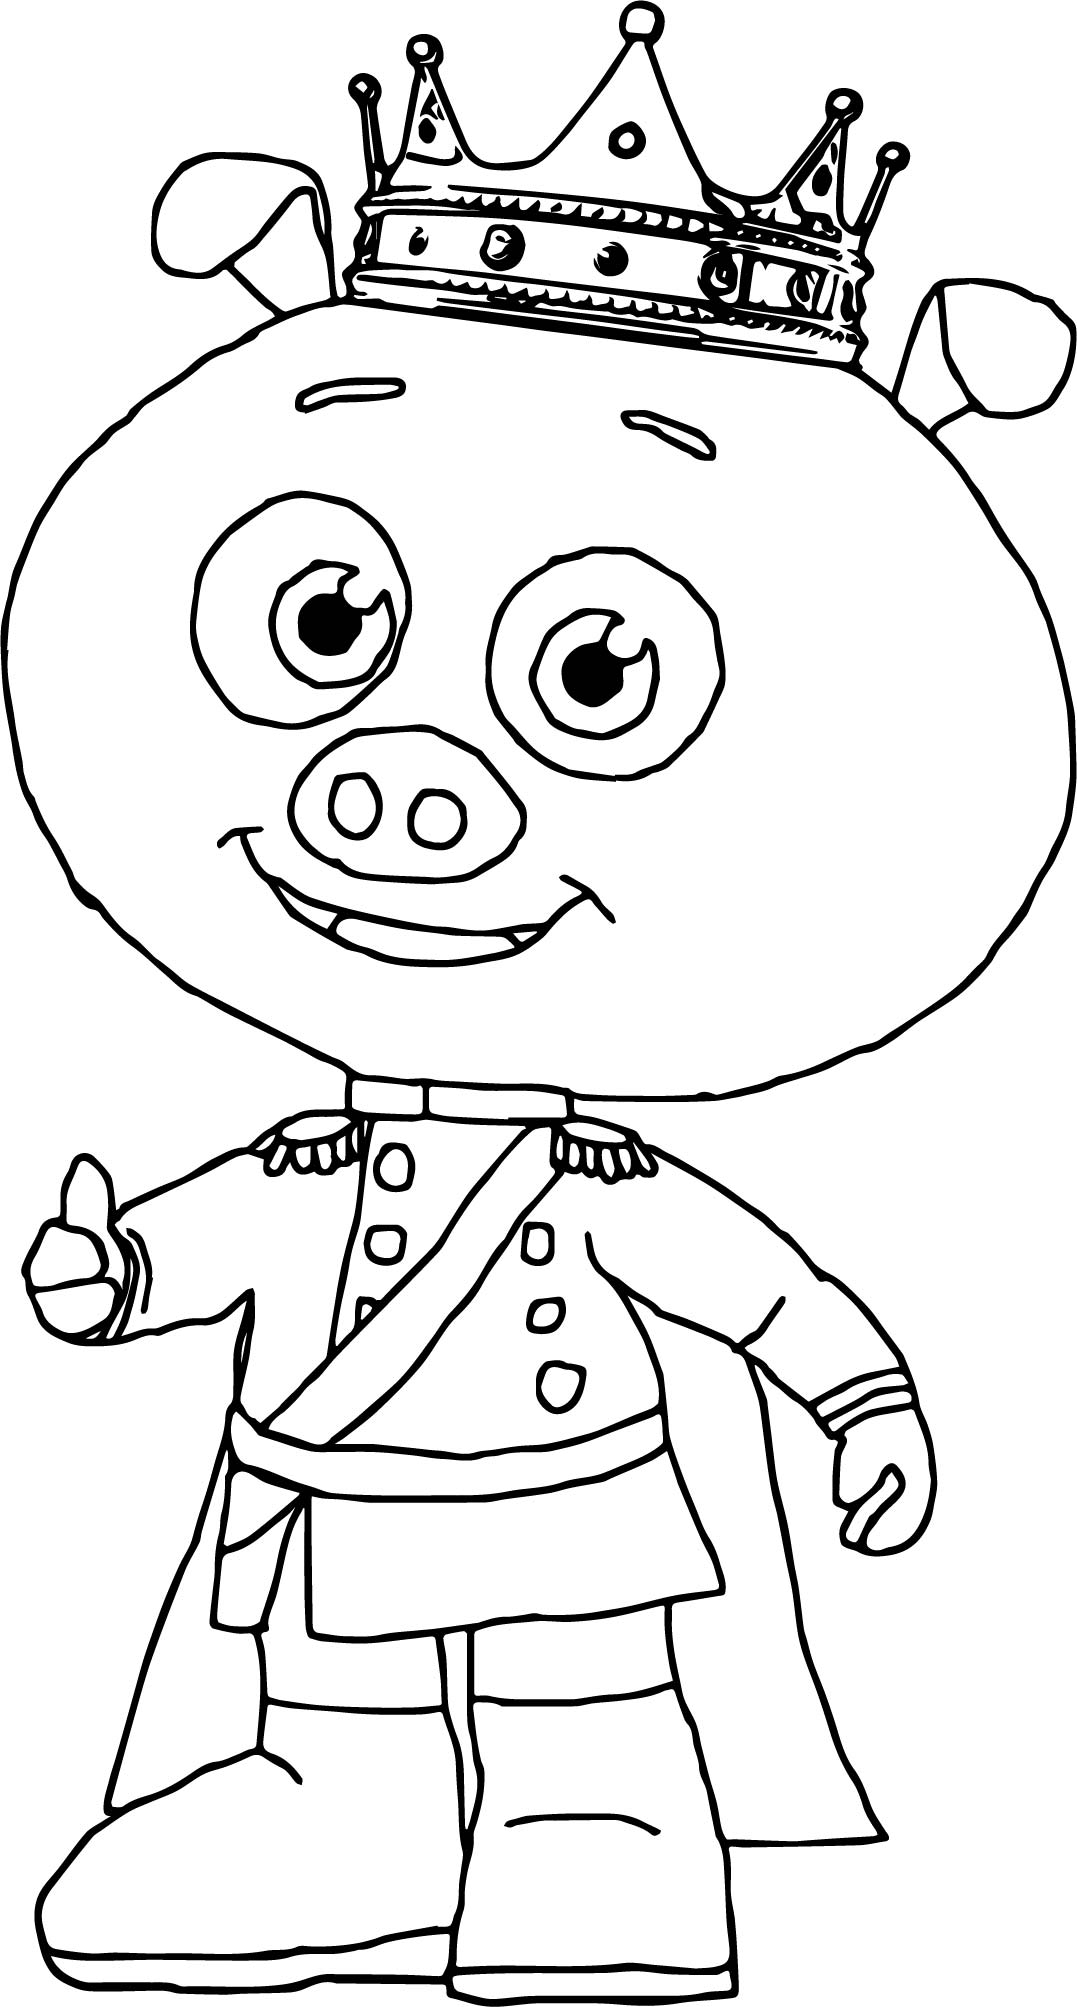 1077x2007 Prince Pig Super Why Coloring Page Wecoloringpage